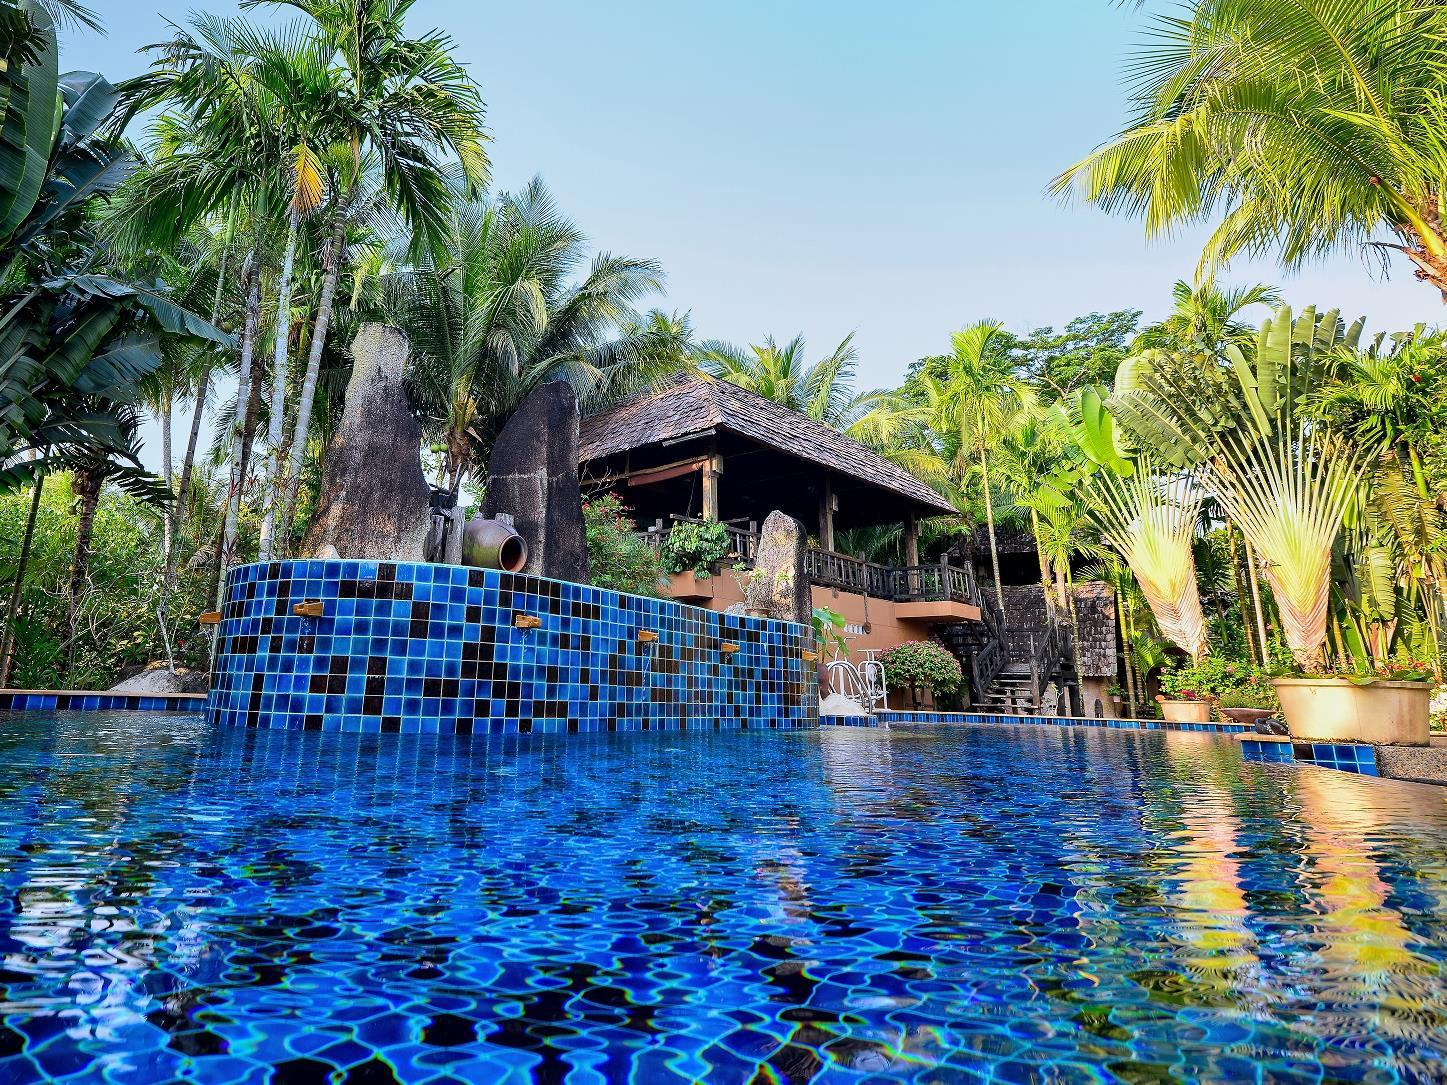 Best hotels in Koh Chang: review, rating, description and reviews of tourists 95